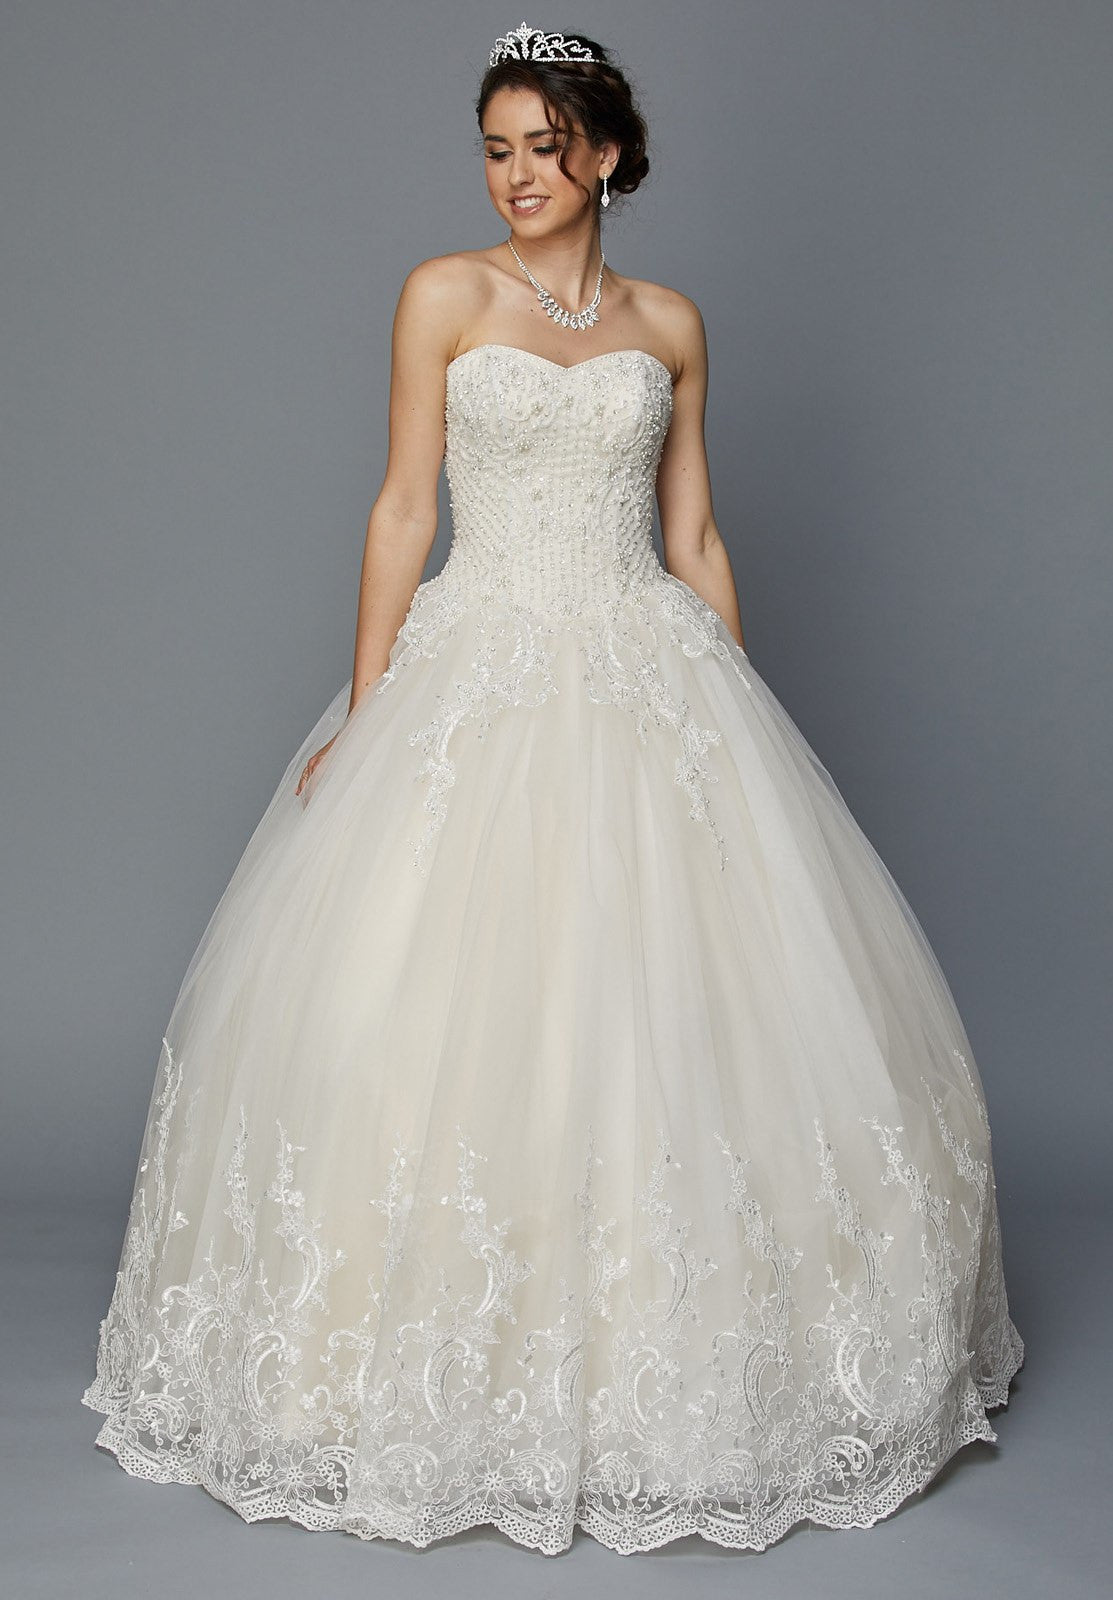 Juliet 353 Sweetheart Neckline Champagne Strapless Wedding Gown ...